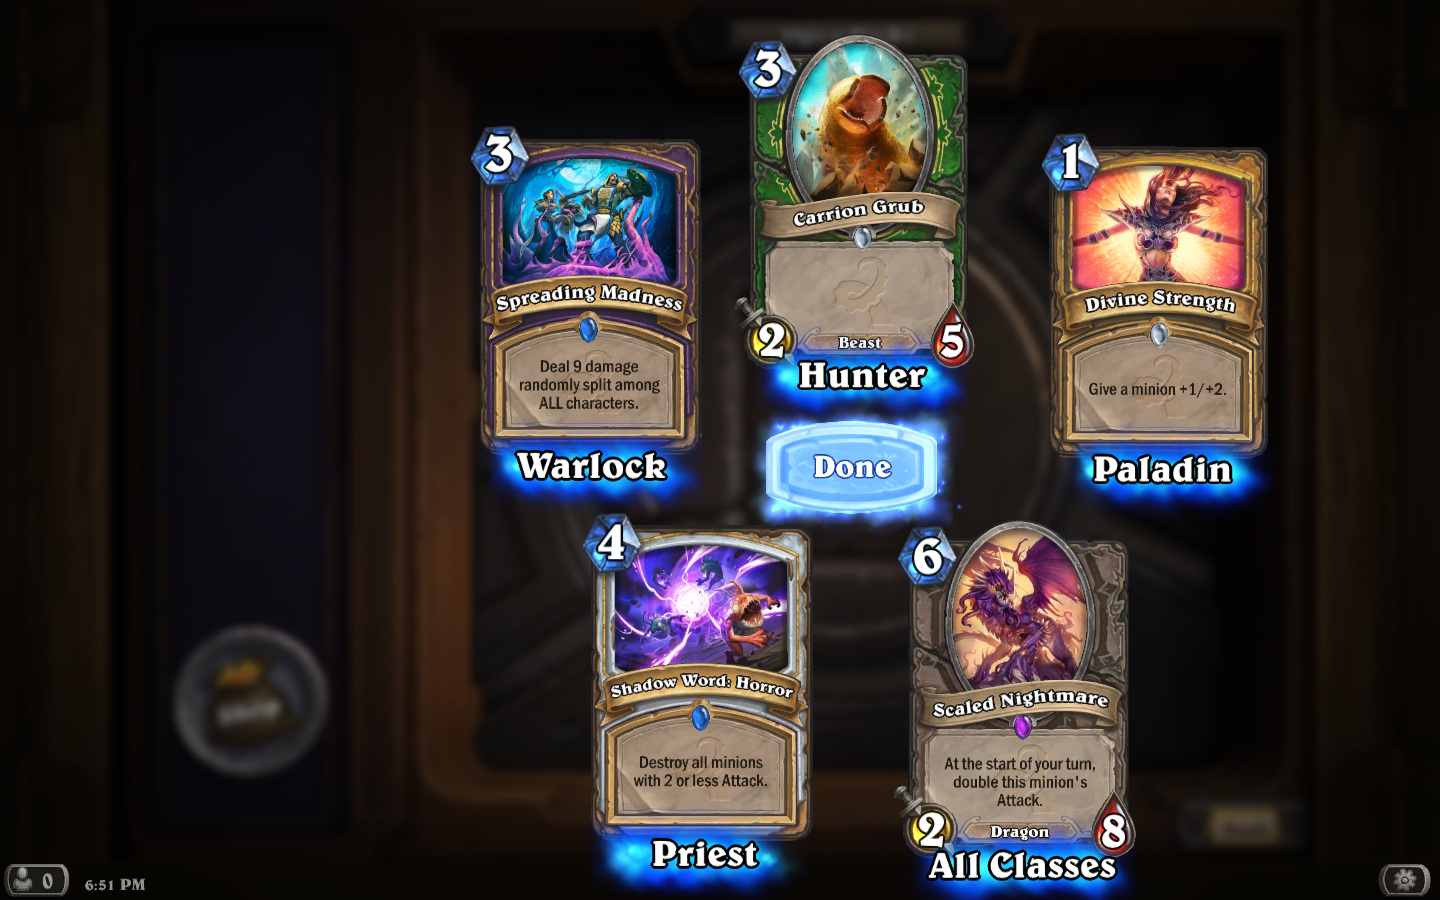 First Pack - 1 Epic, 2 Rares, ntb.